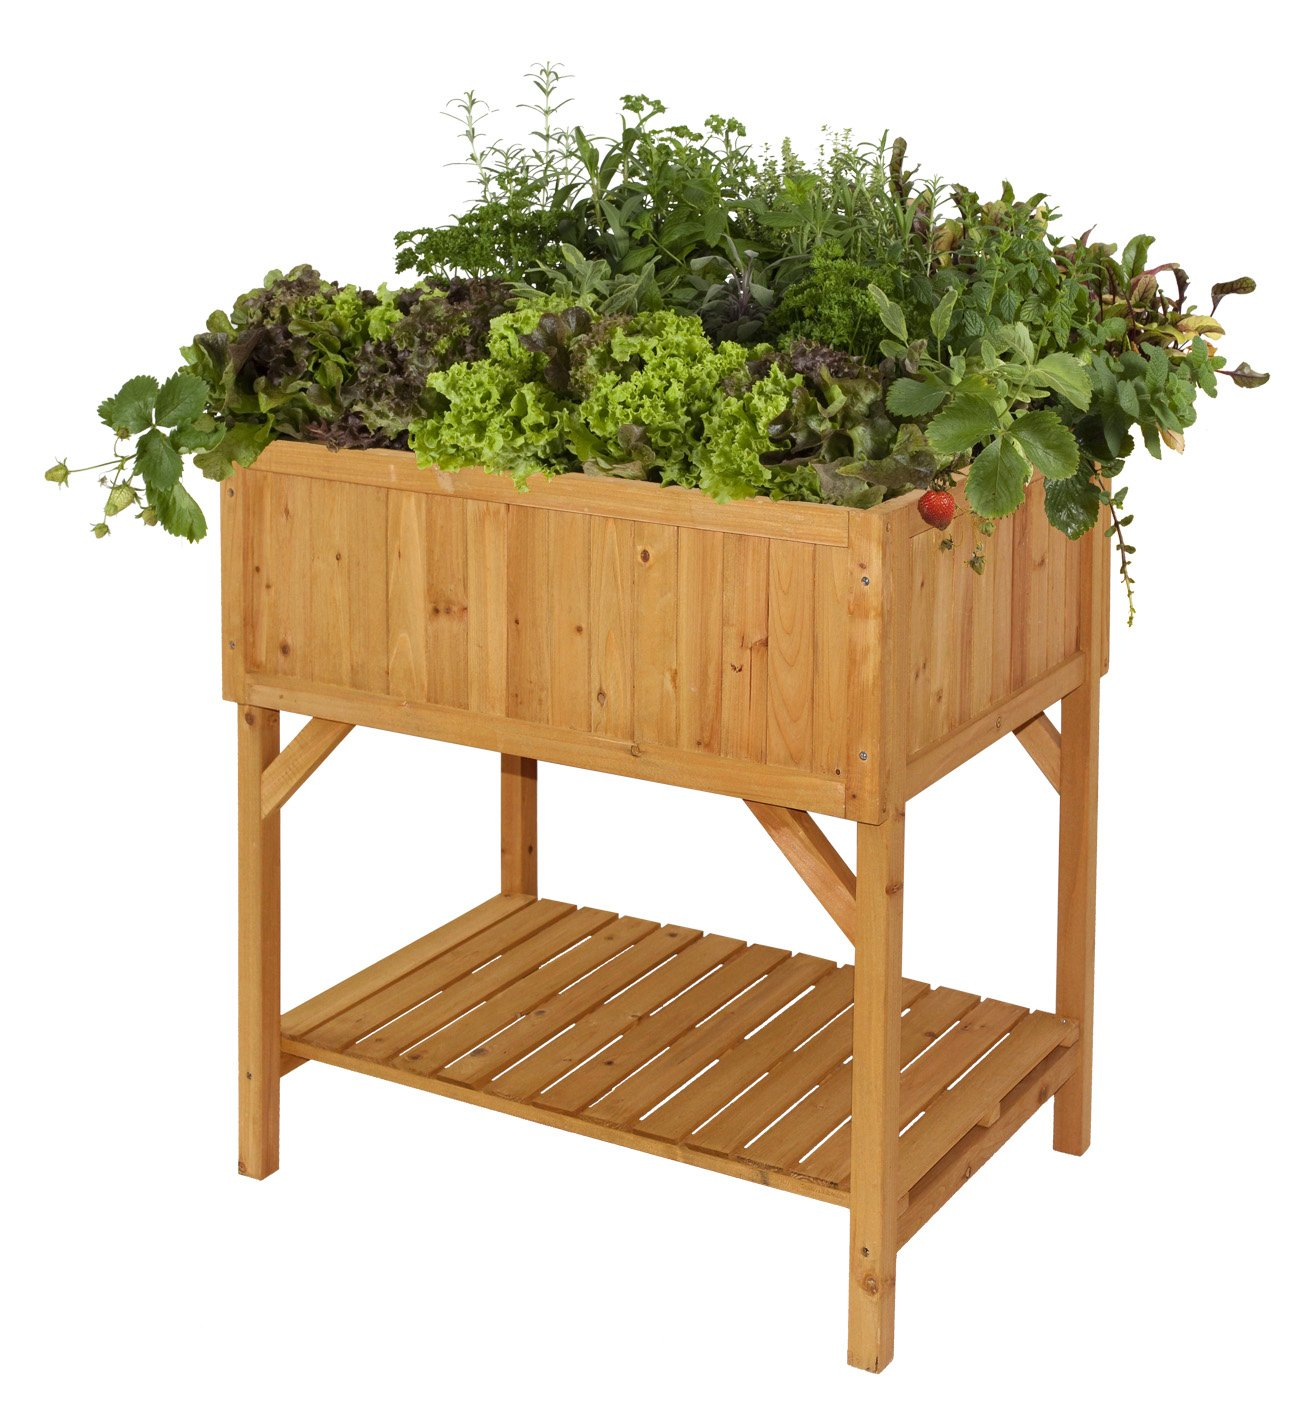 Table With Drink Trough High Level Wooden Trough Planter Table Raised Bed Ideal For Herbs